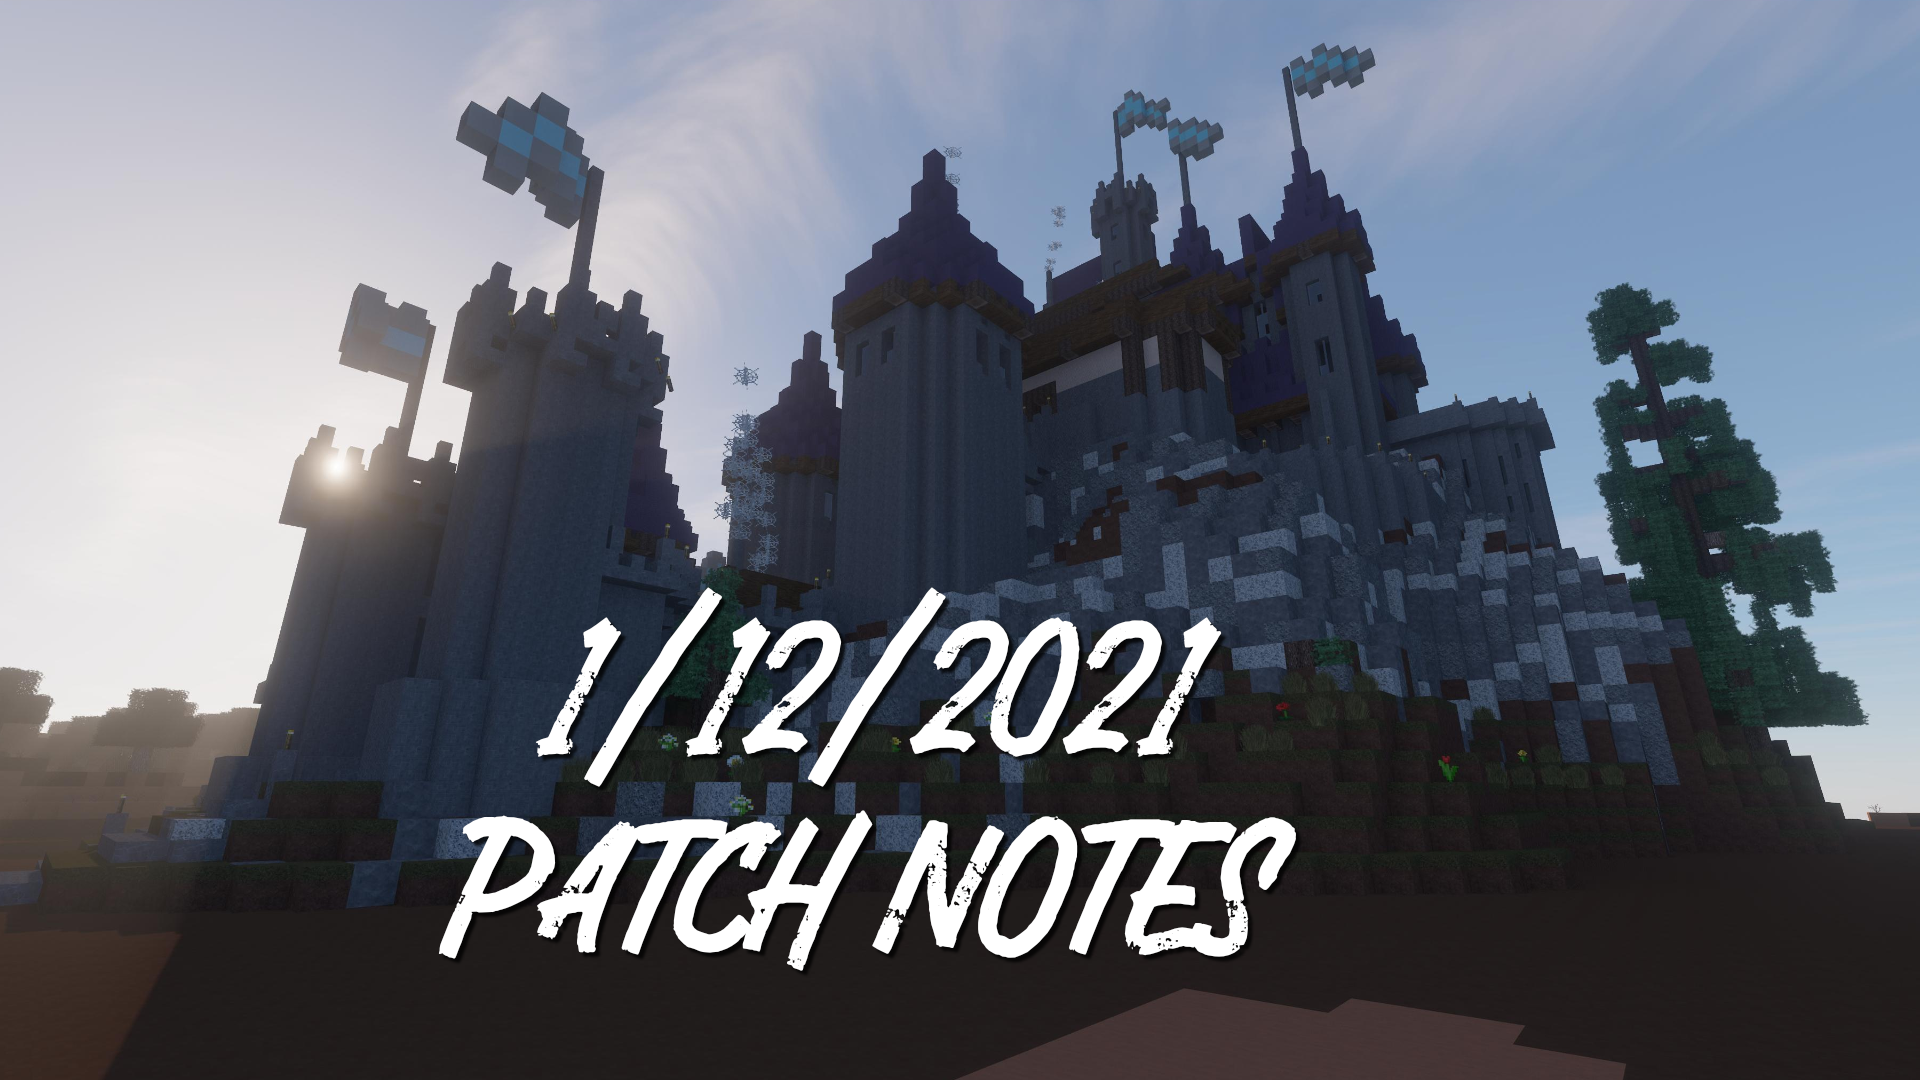 1/12/2021 Patch Notes